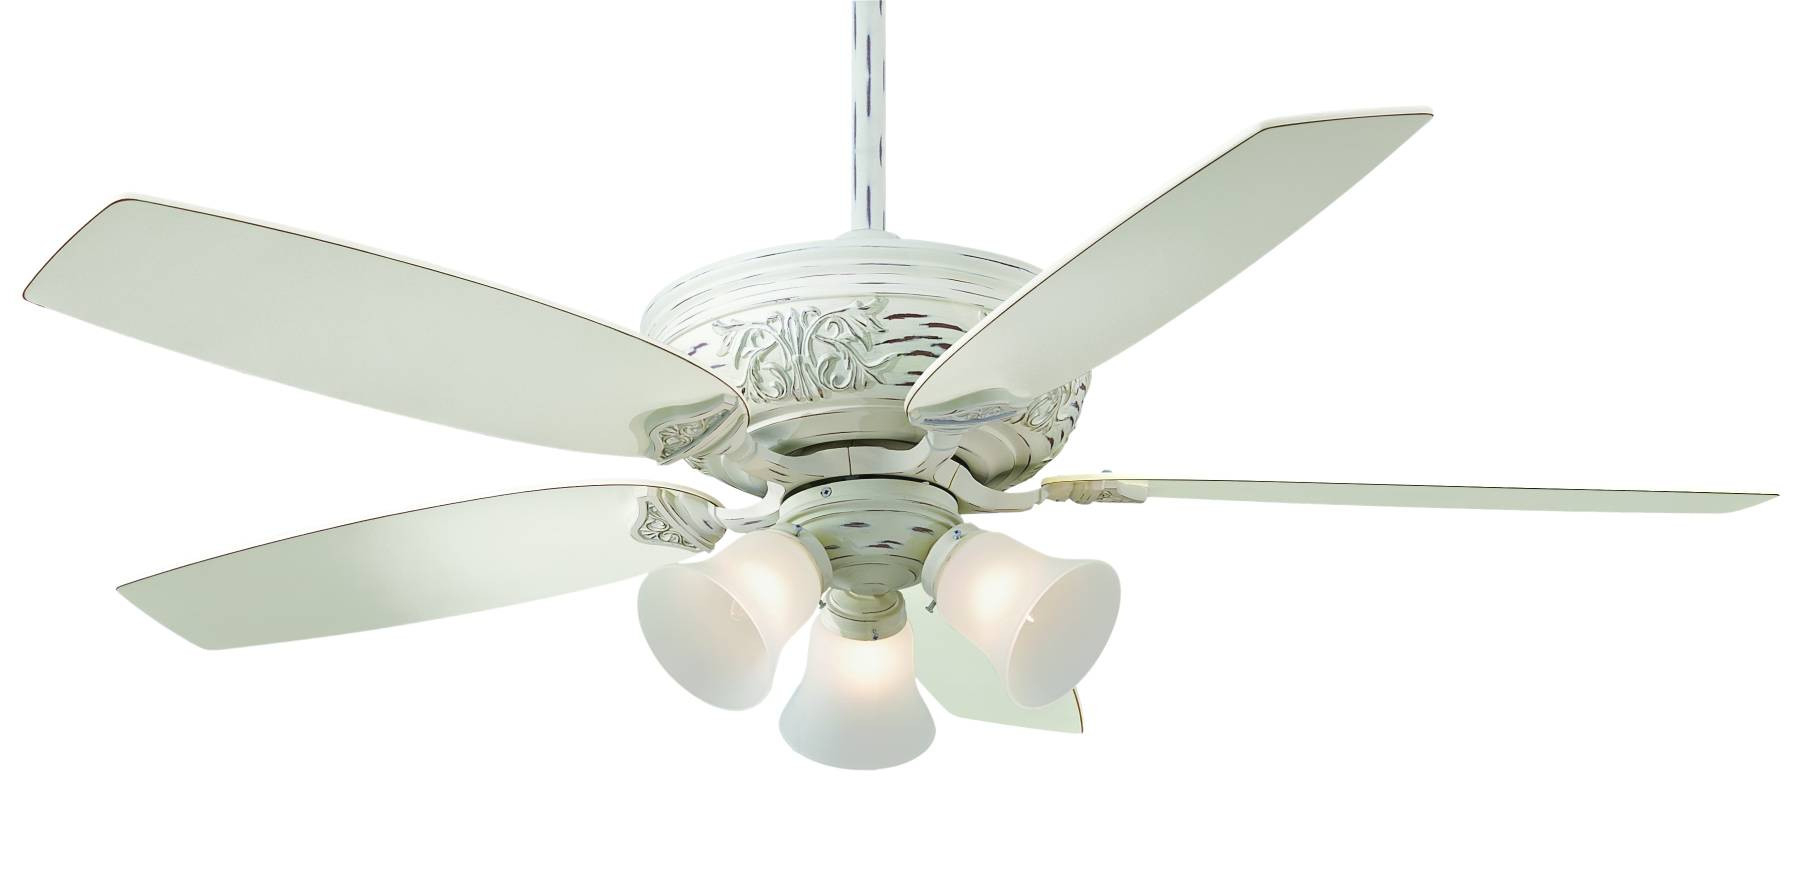 Minka Aire Classica Gallery Edition Ceiling Fan Model Mf Pertaining To Favorite Classica 5 Blade Ceiling Fans (View 16 of 20)